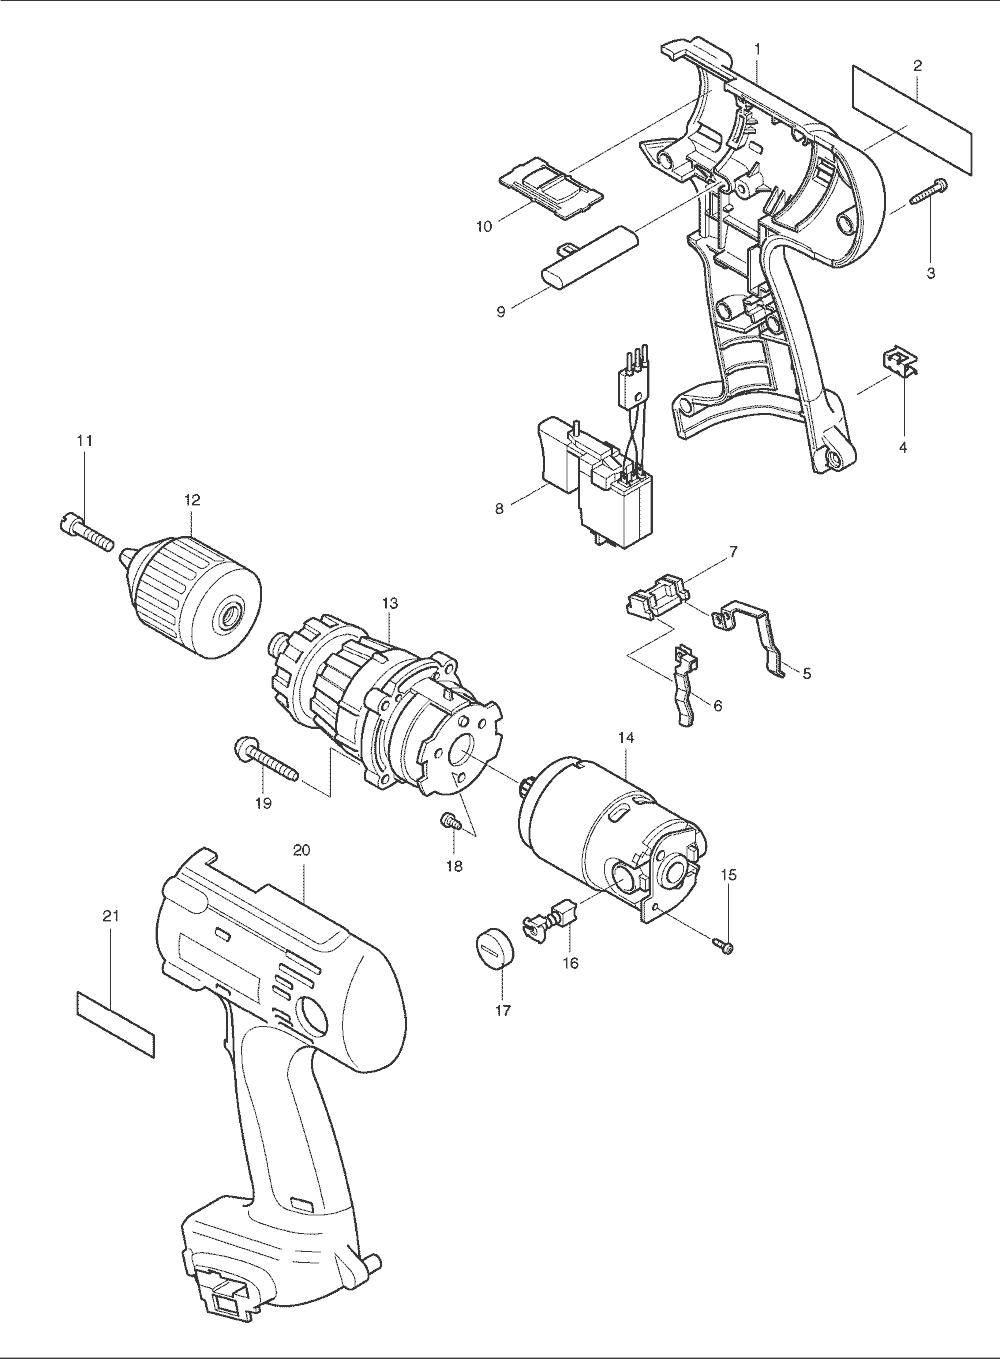 Makita Drill Switch Diagram Free Download Wiring Diagram Schematic on